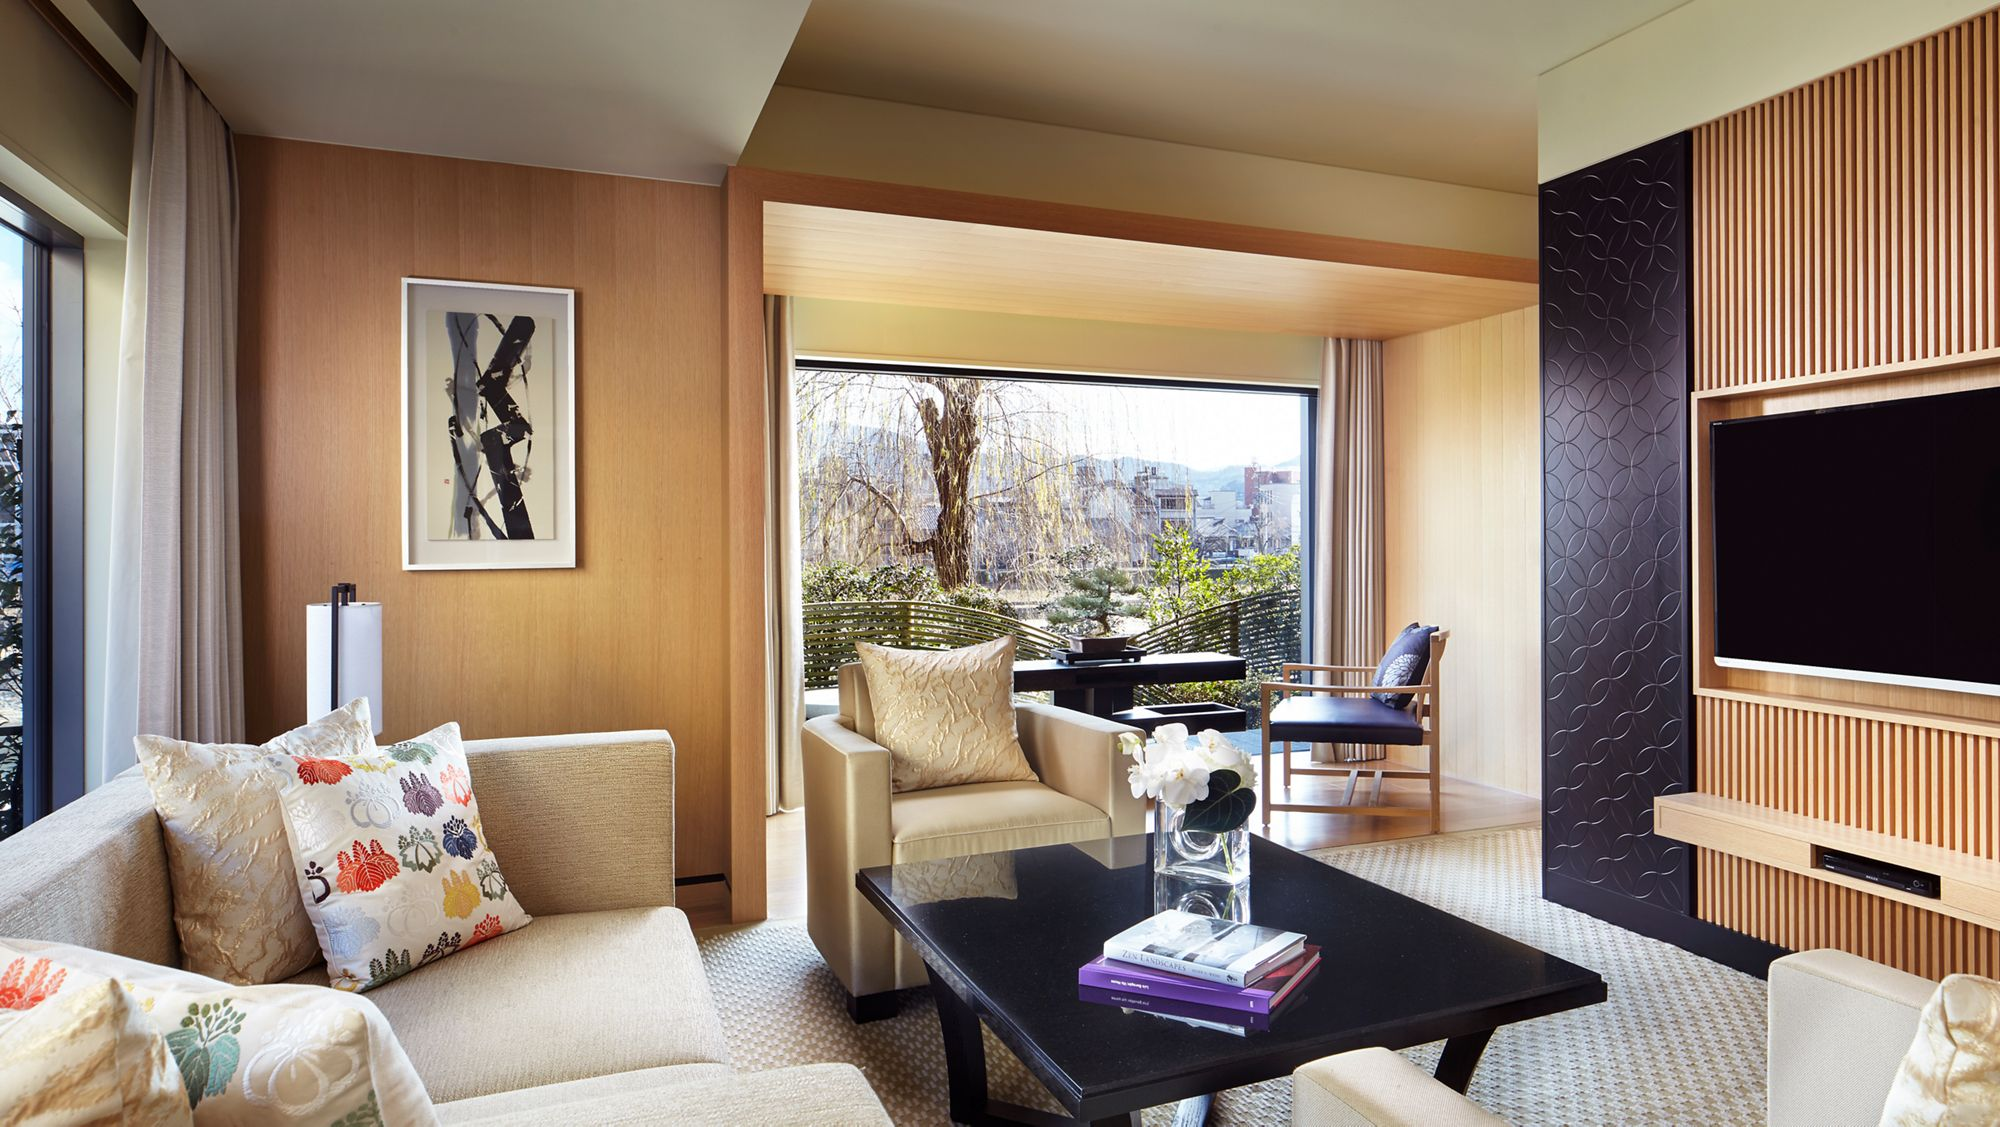 Room with a sofa, armchairs, coffee table, wall-mounted flat-screen TV and a floor-to-ceiling window overlooking a garden